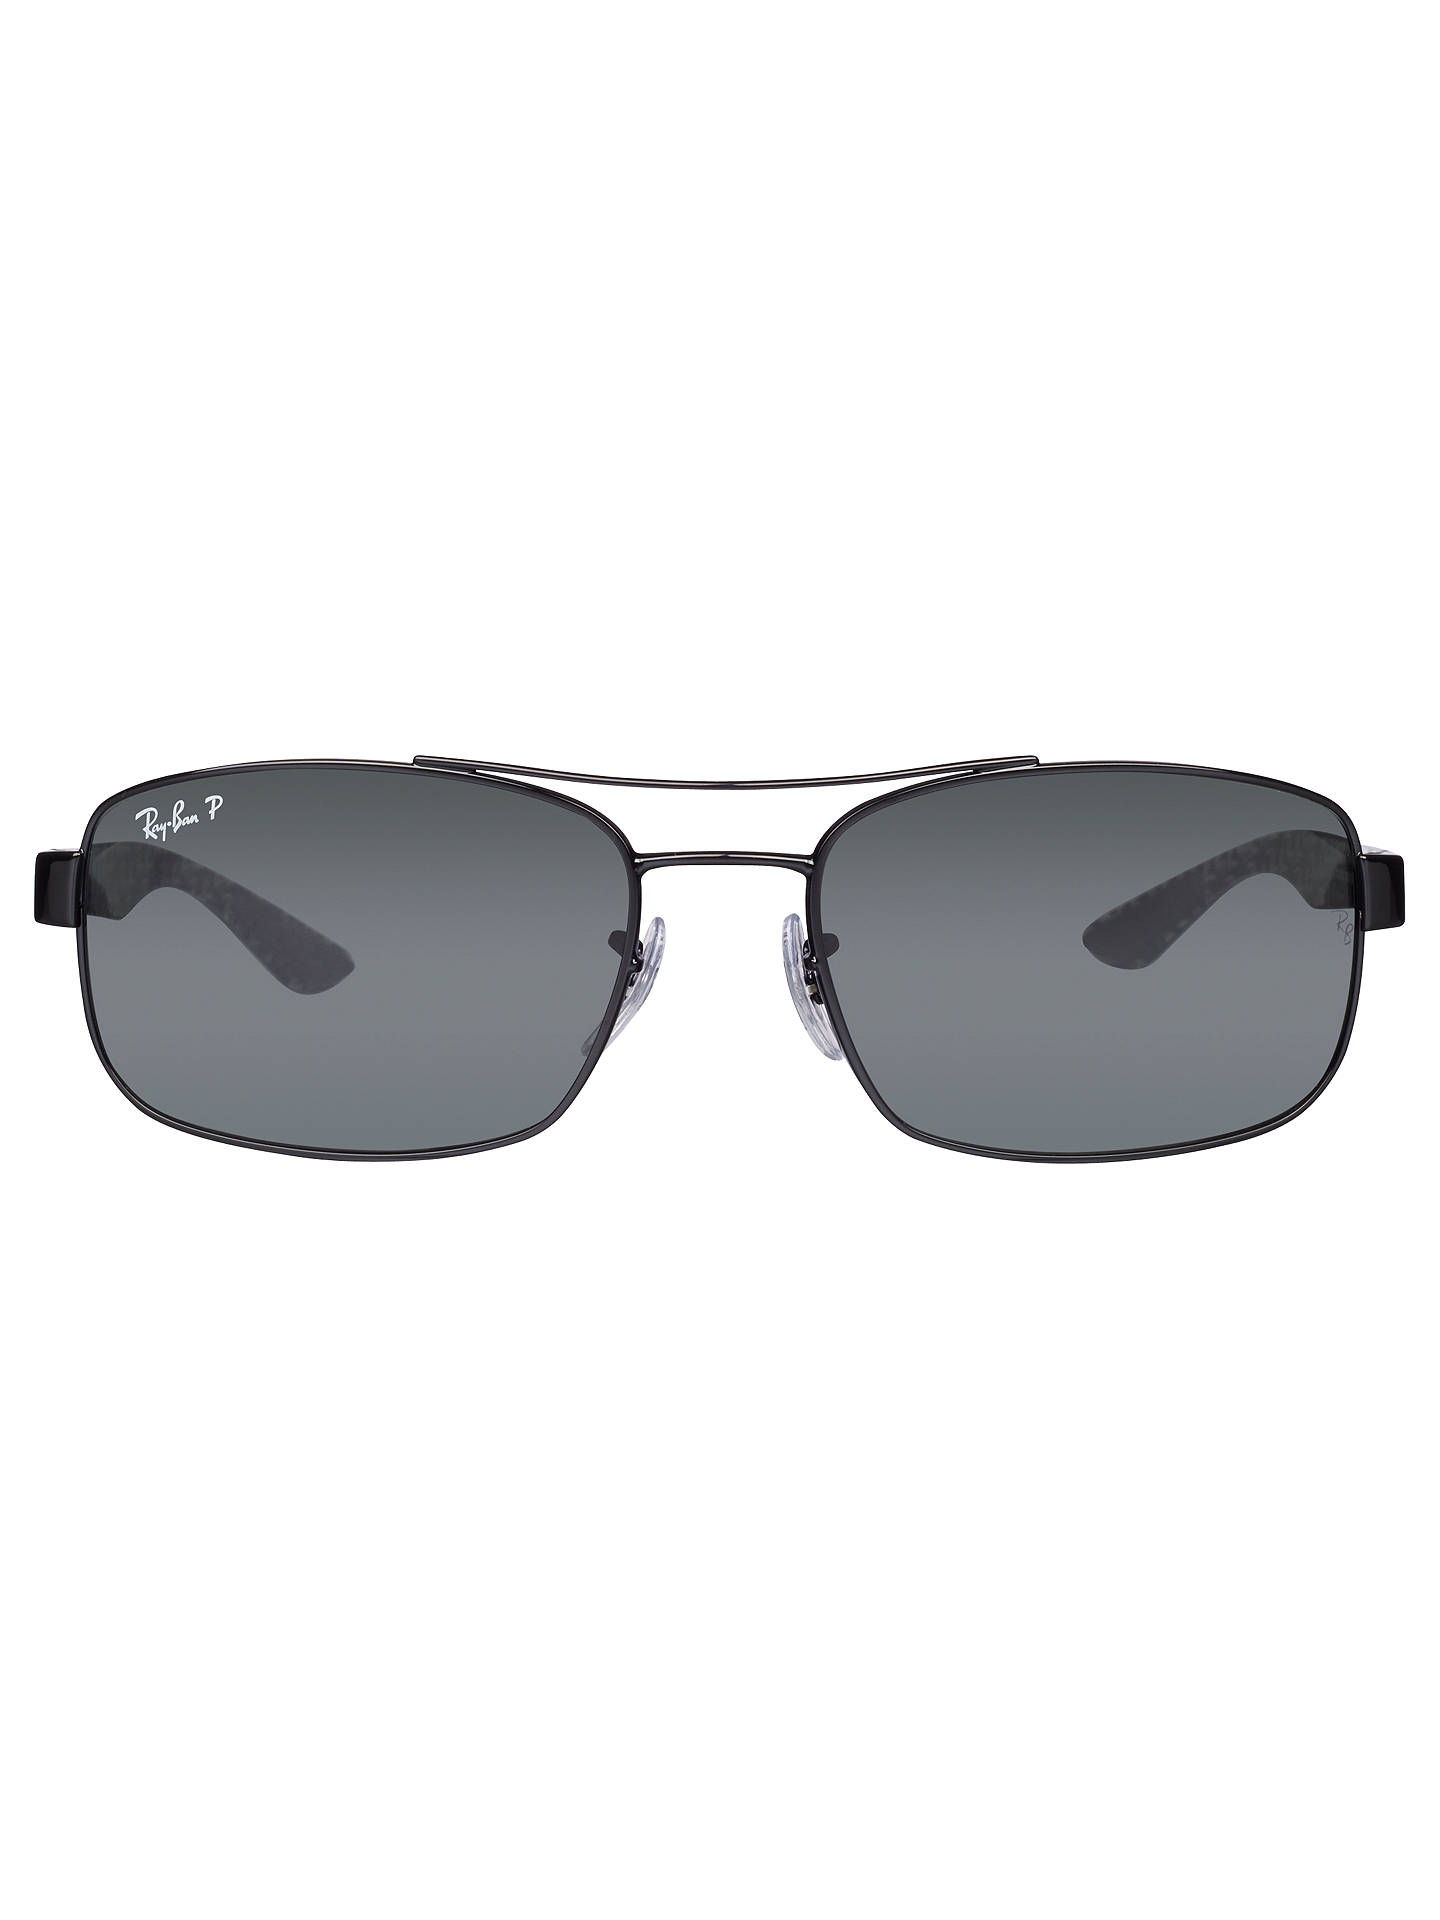 BuyRay-Ban RB8316 Carbon Fibre Polarised Sunglasses, Black Online at johnlewis.com